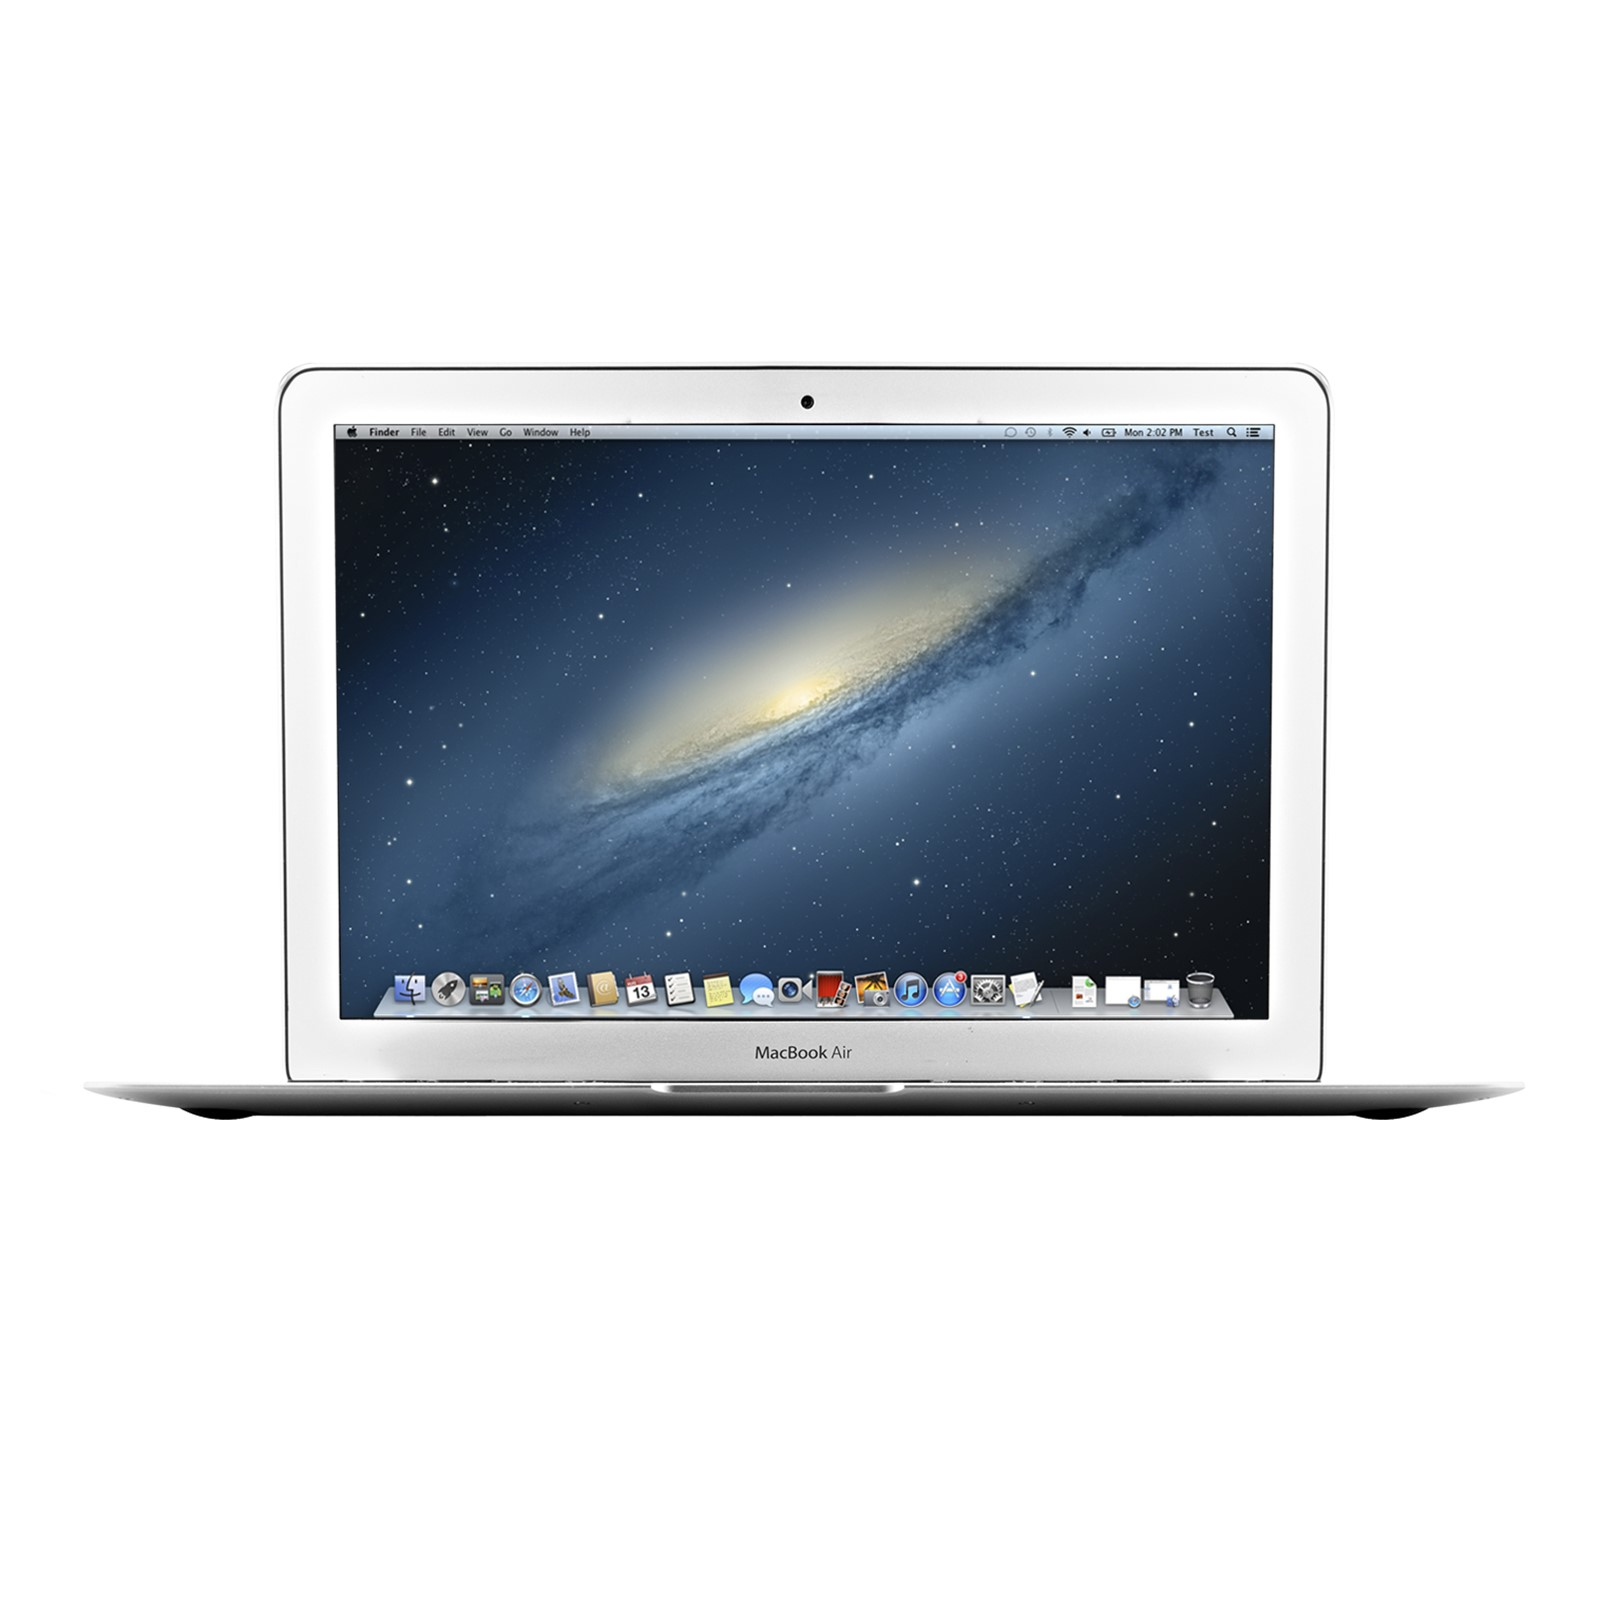 Upgrade my SSD to 250, gB on, macBook, air - - Apple Community Apple, macBook, air 250, gB, hDD Laptops Price List in the Philippines June 2018